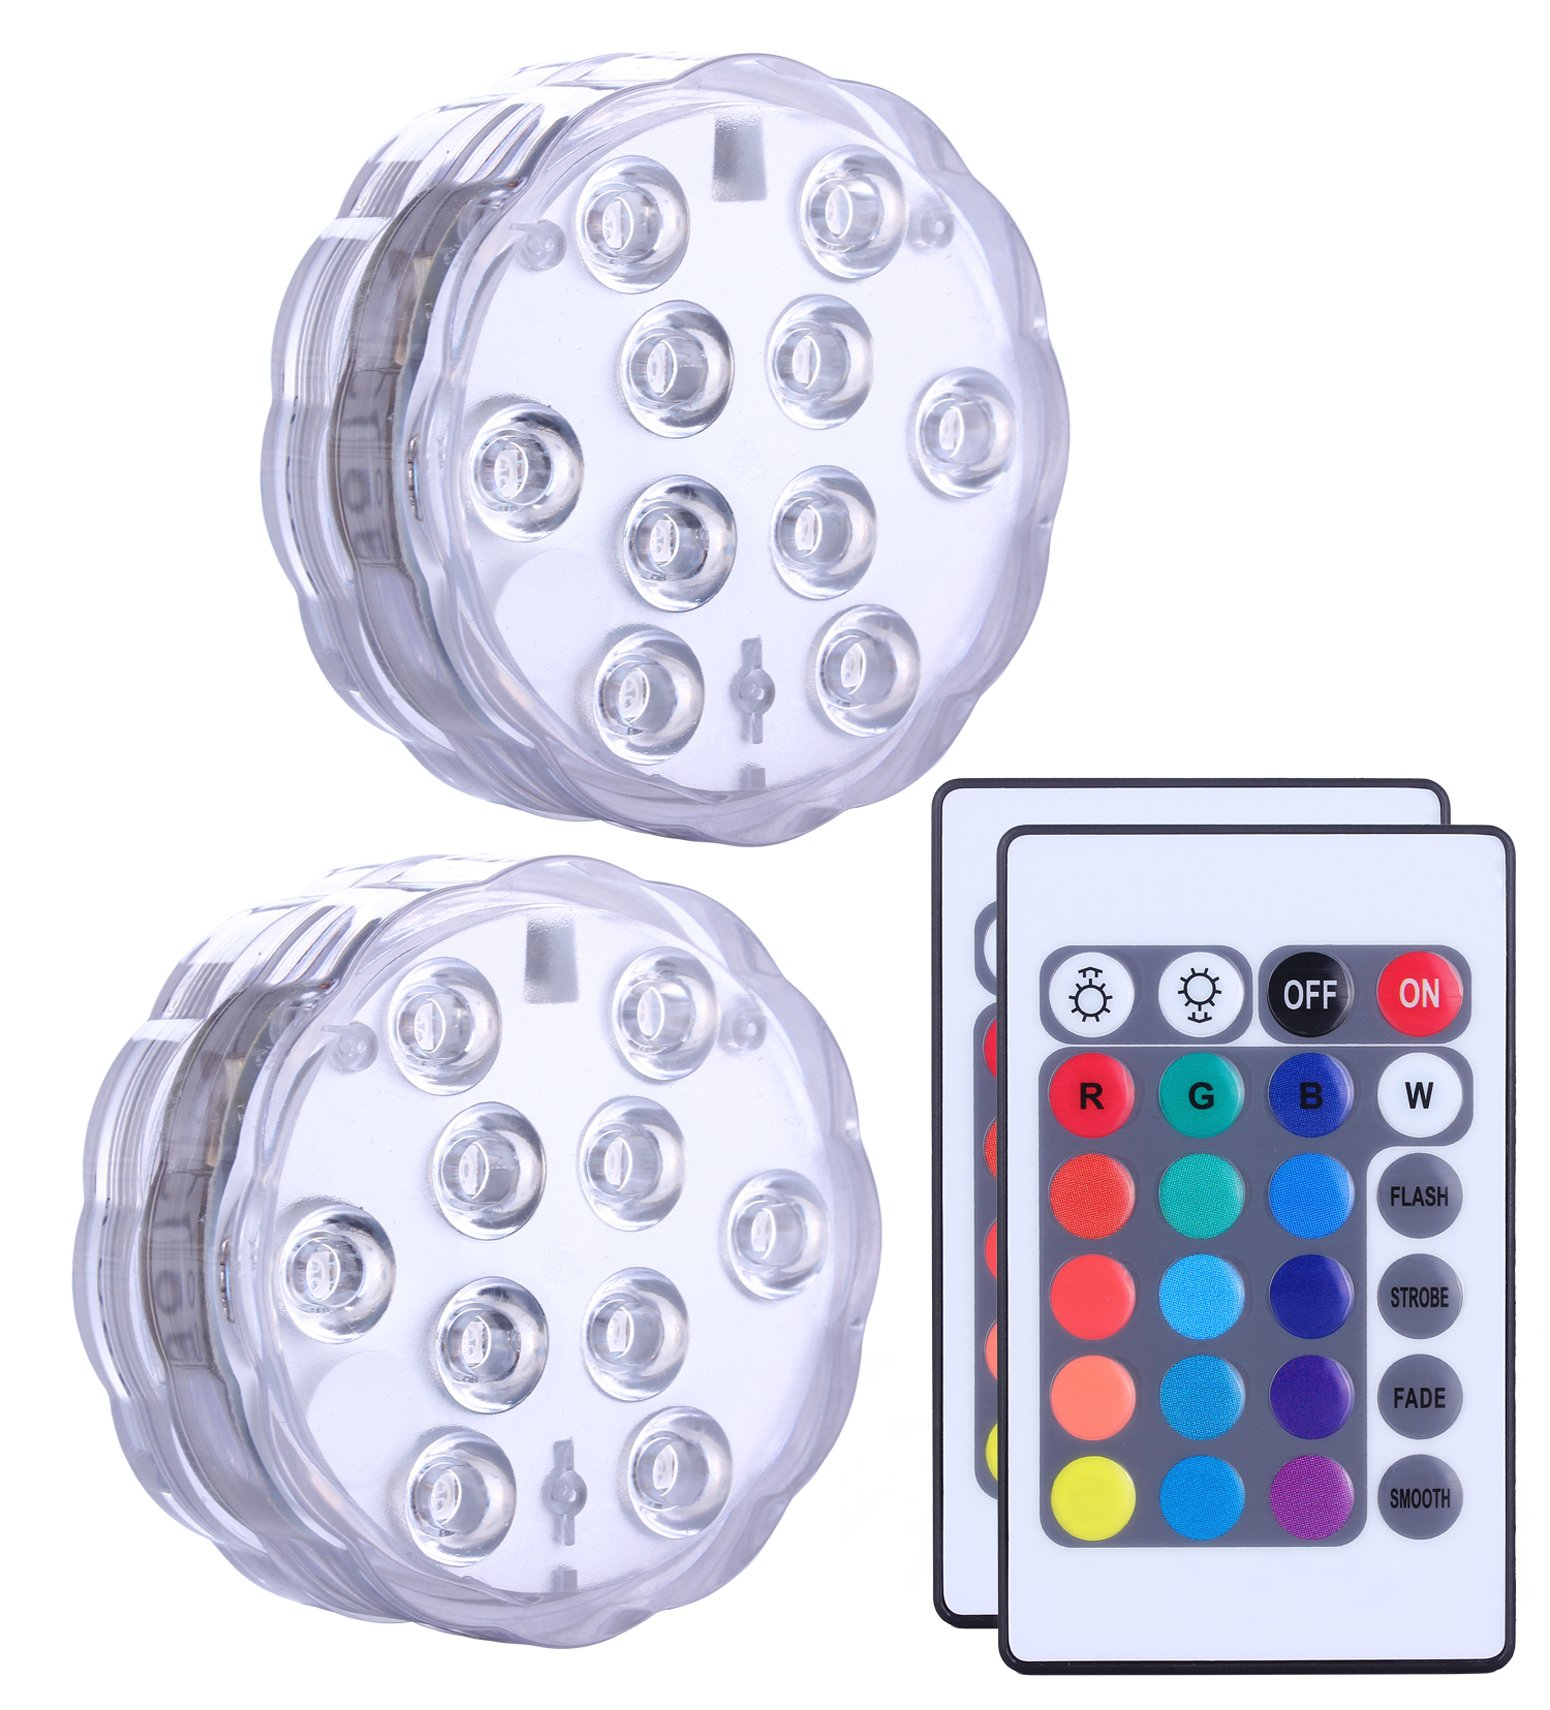 Qoolife Submersible Led Lights Remote Controlled, Battery Powered, RGB Changing Waterproof Light for Event Party and Home Decoration, Multi Color, Set of 2 by Qoolife